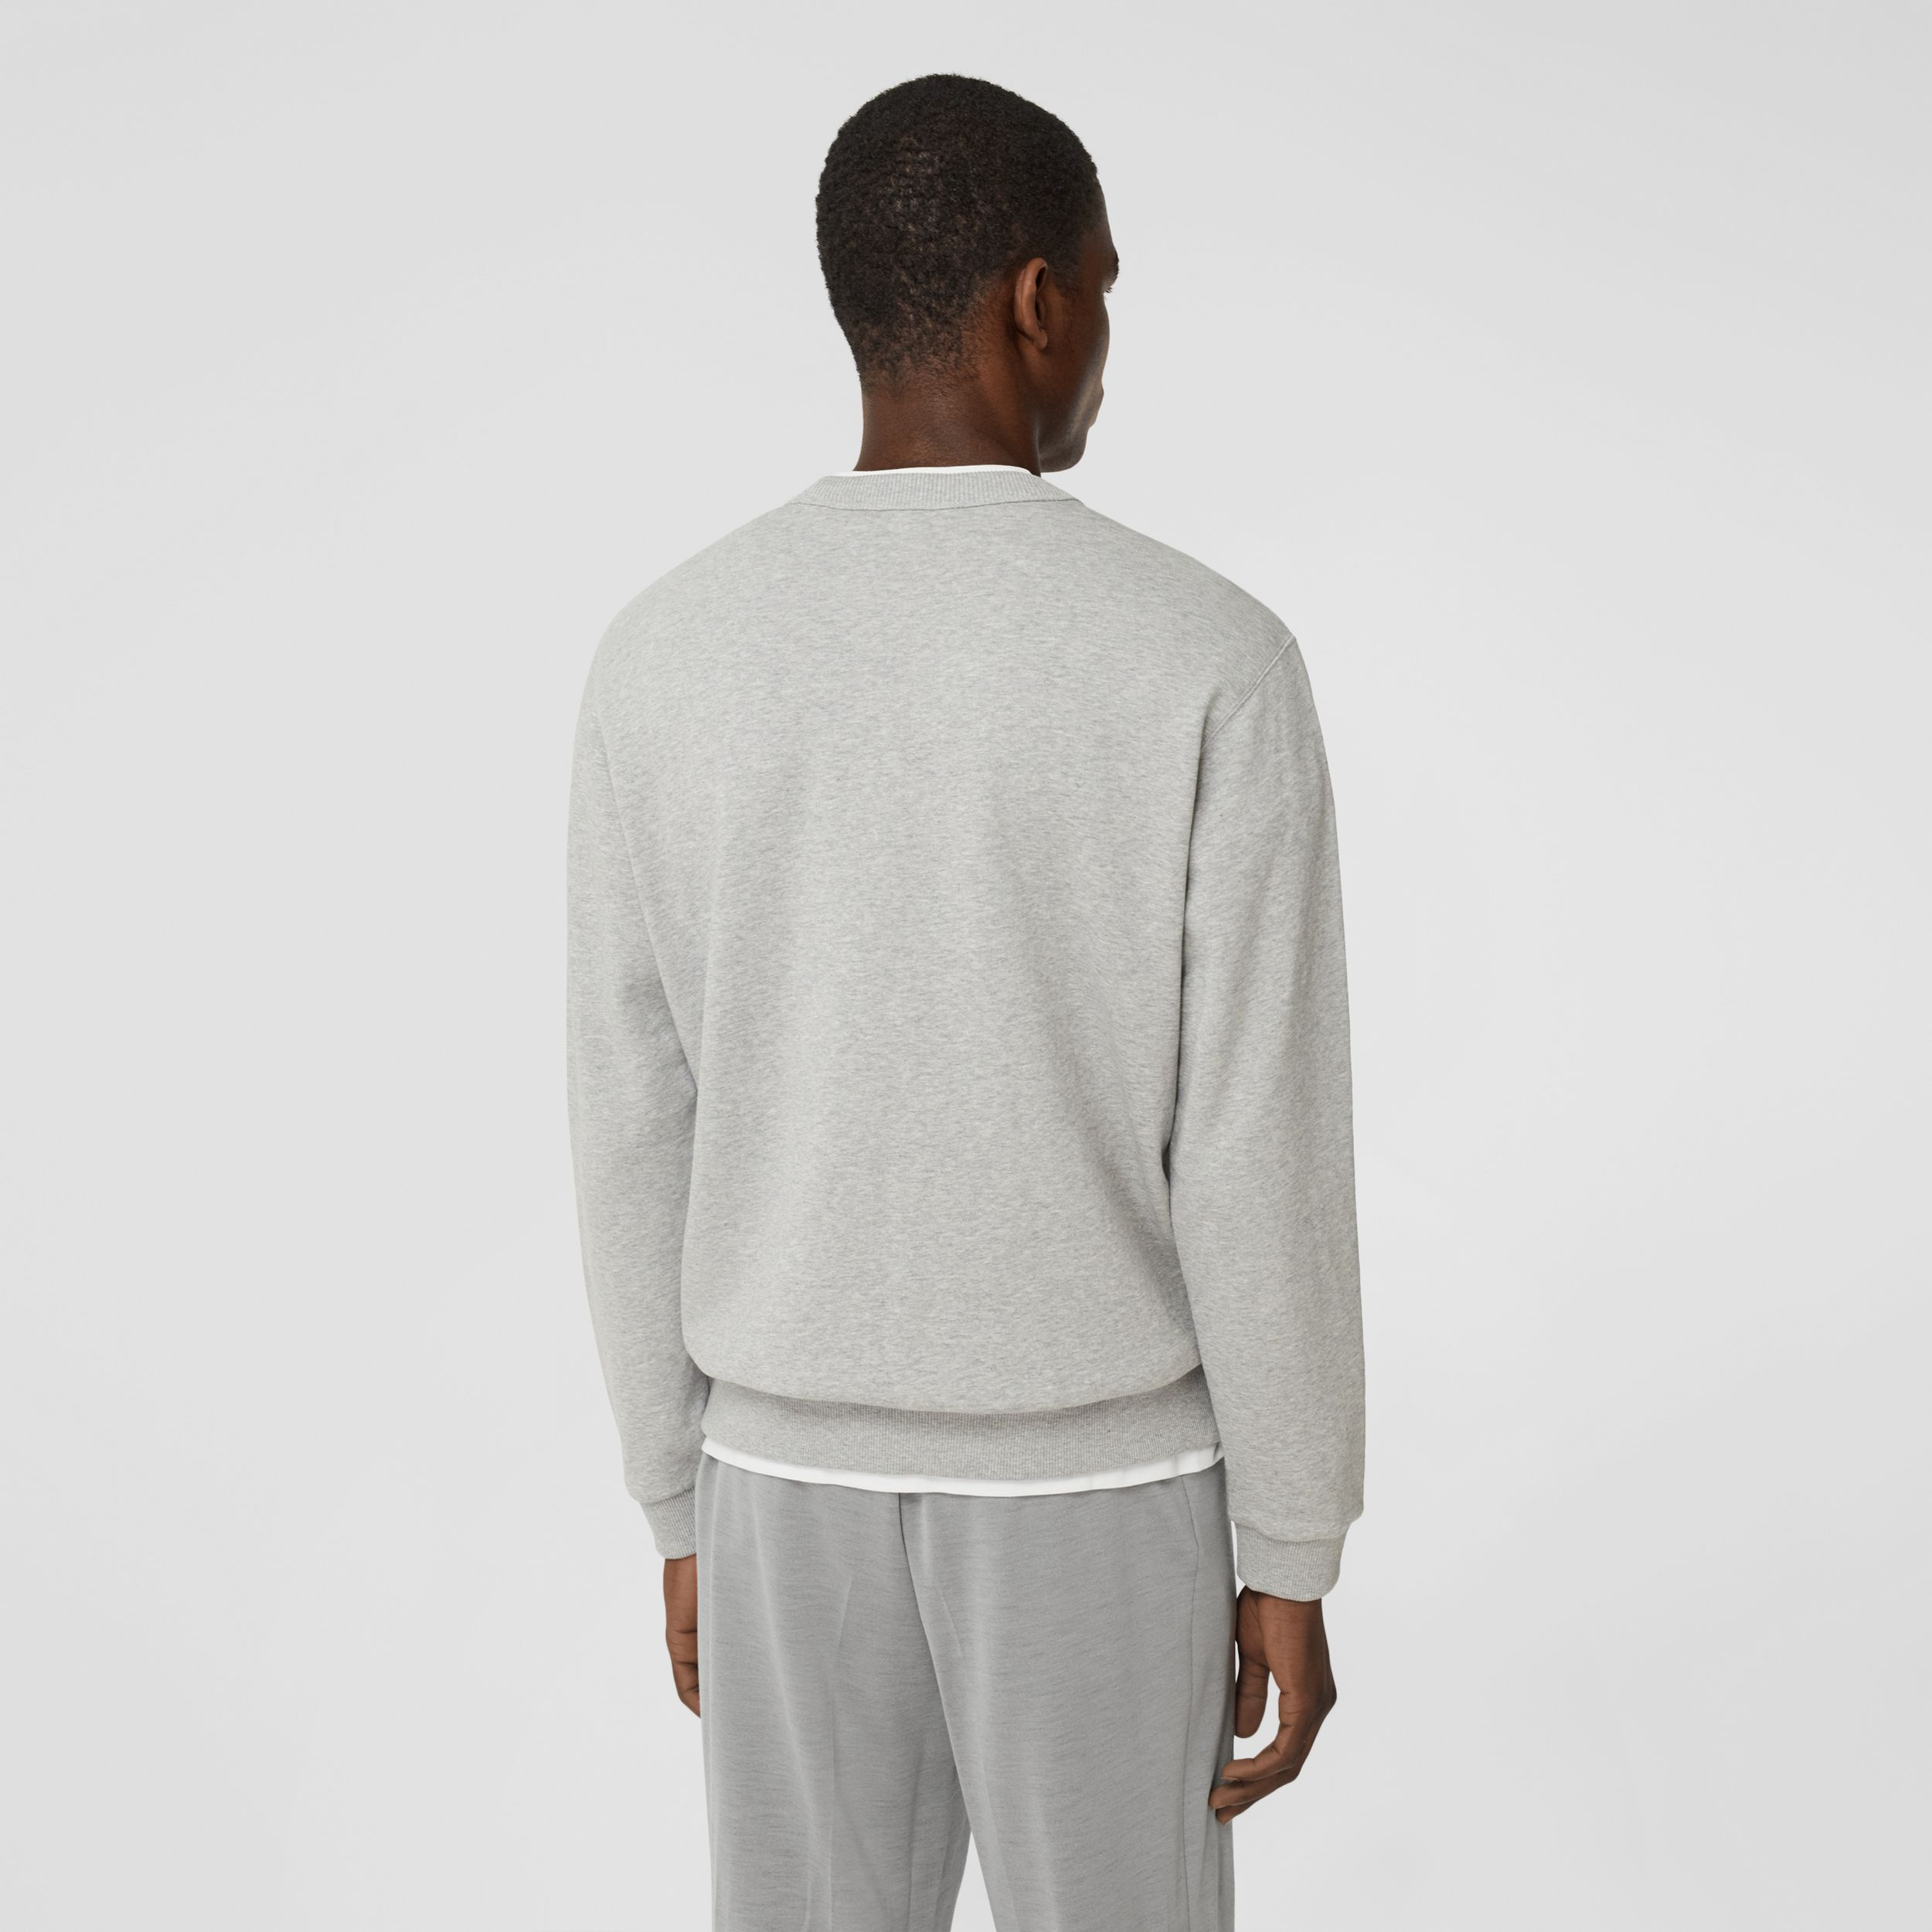 Monogram Motif Cotton Sweatshirt in Pale Grey Melange - Men | Burberry - 3